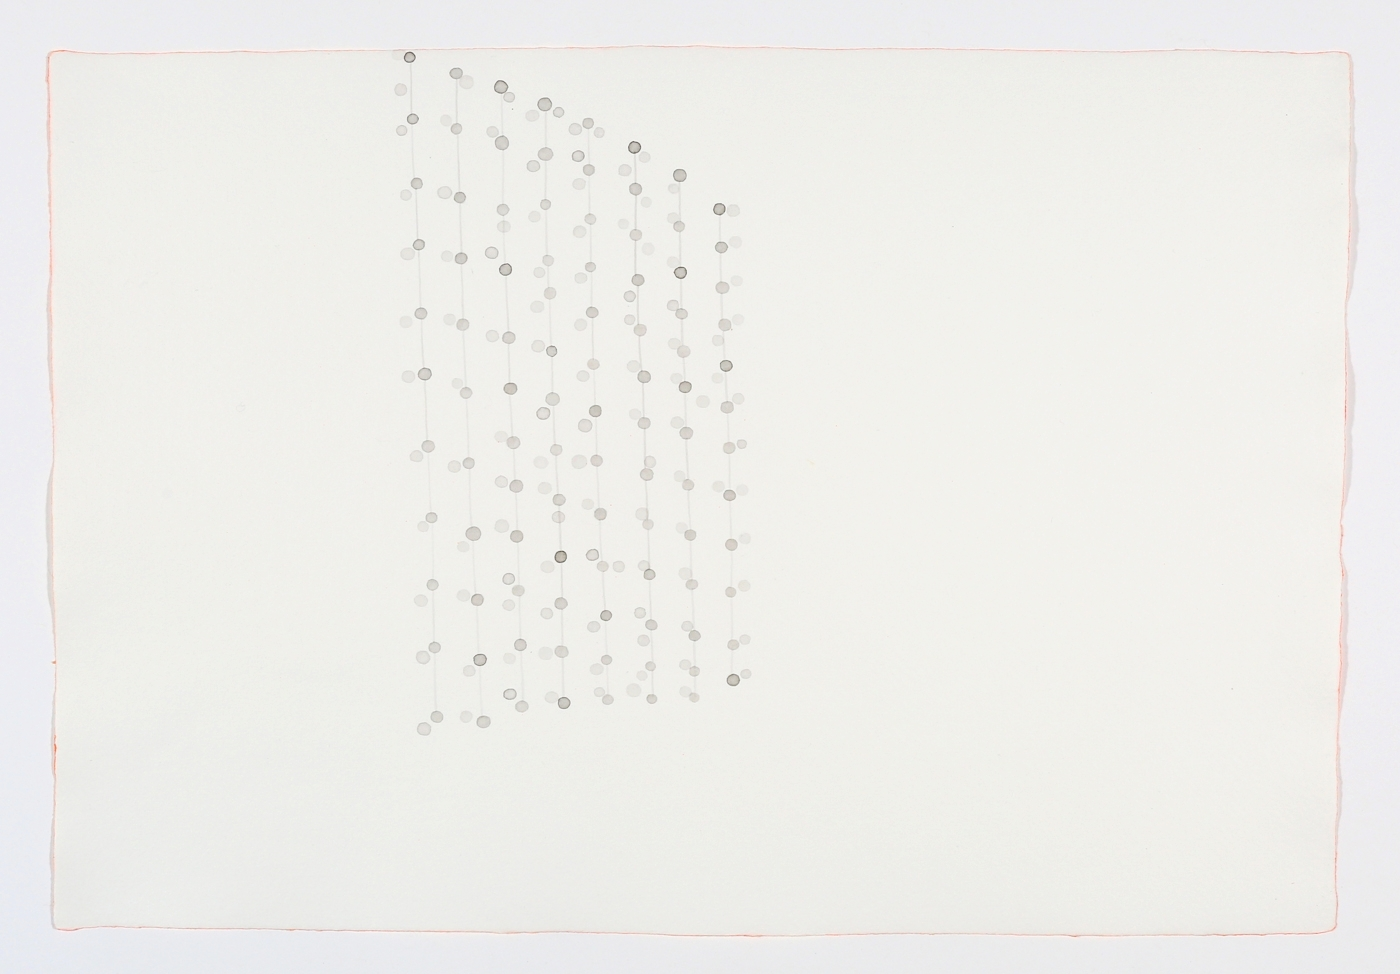 """Beaded Curtain. 2011. Ink on paper. 11"""" x 17"""""""